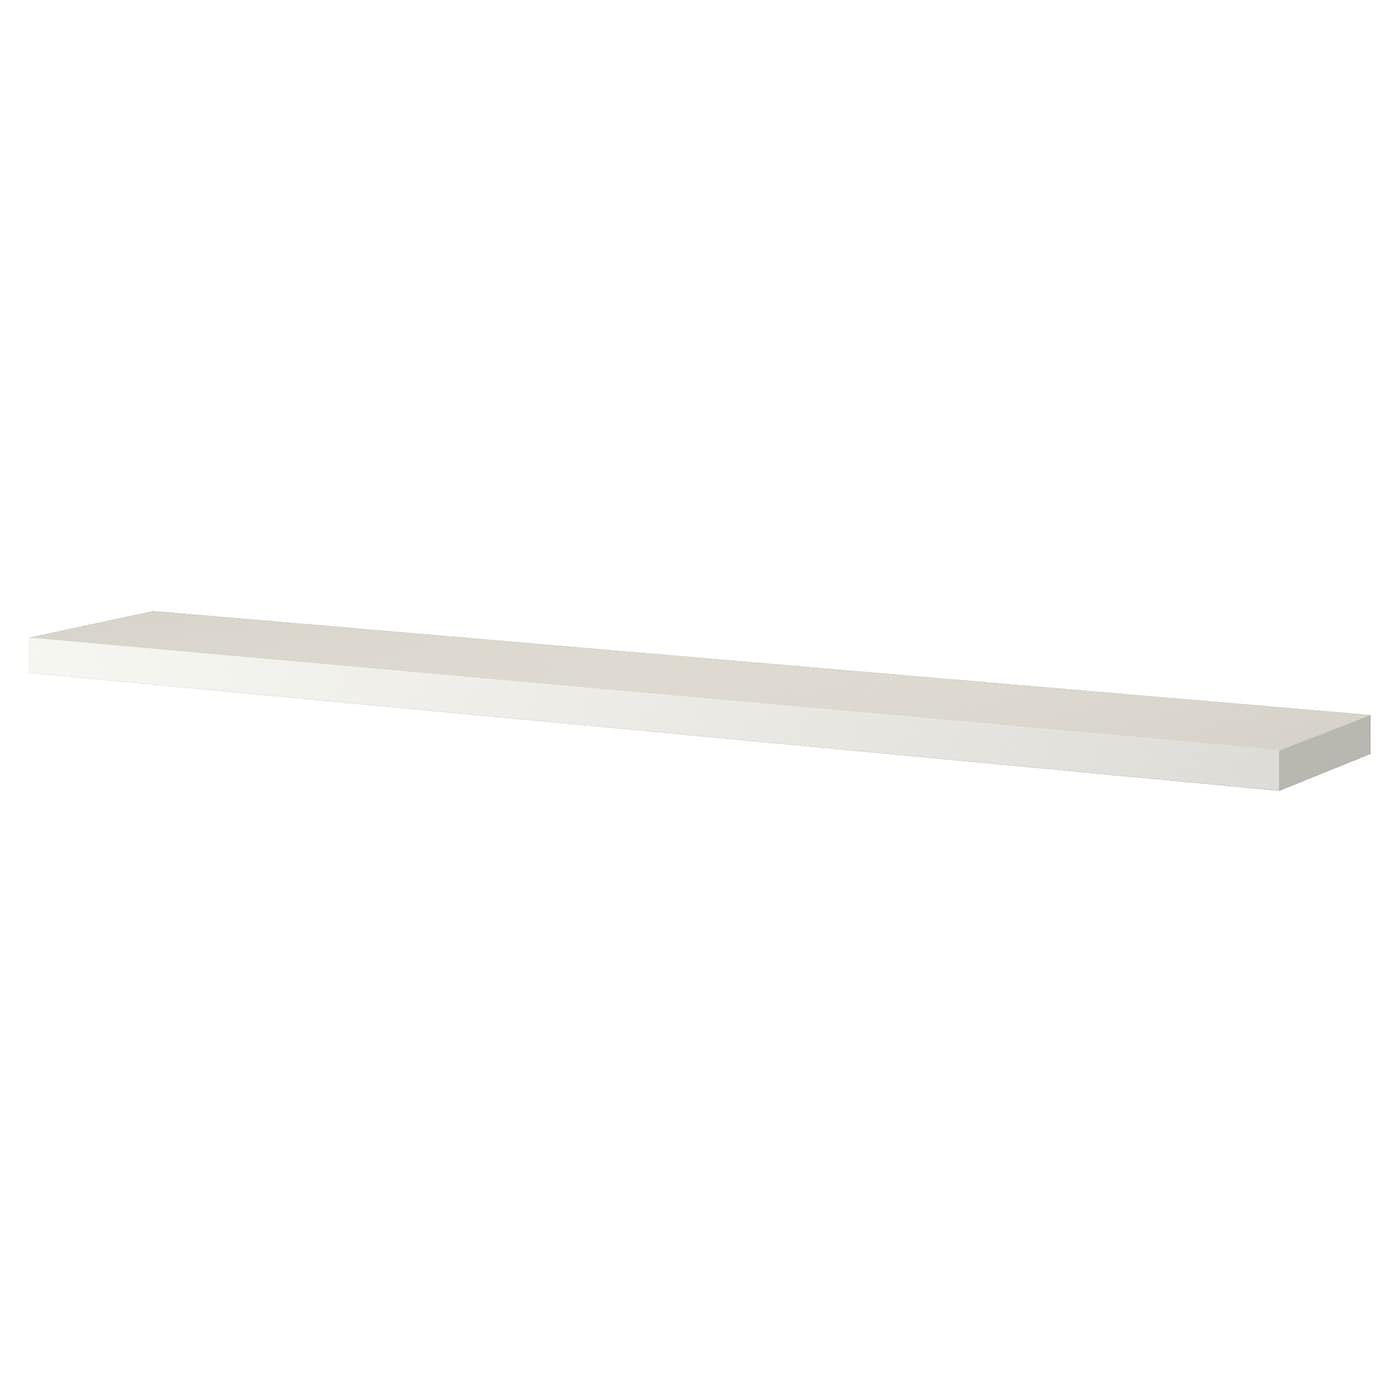 LACK Wall shelf White 190×26 cm  IKEA -> Ikea Lack Wandregal Türkis